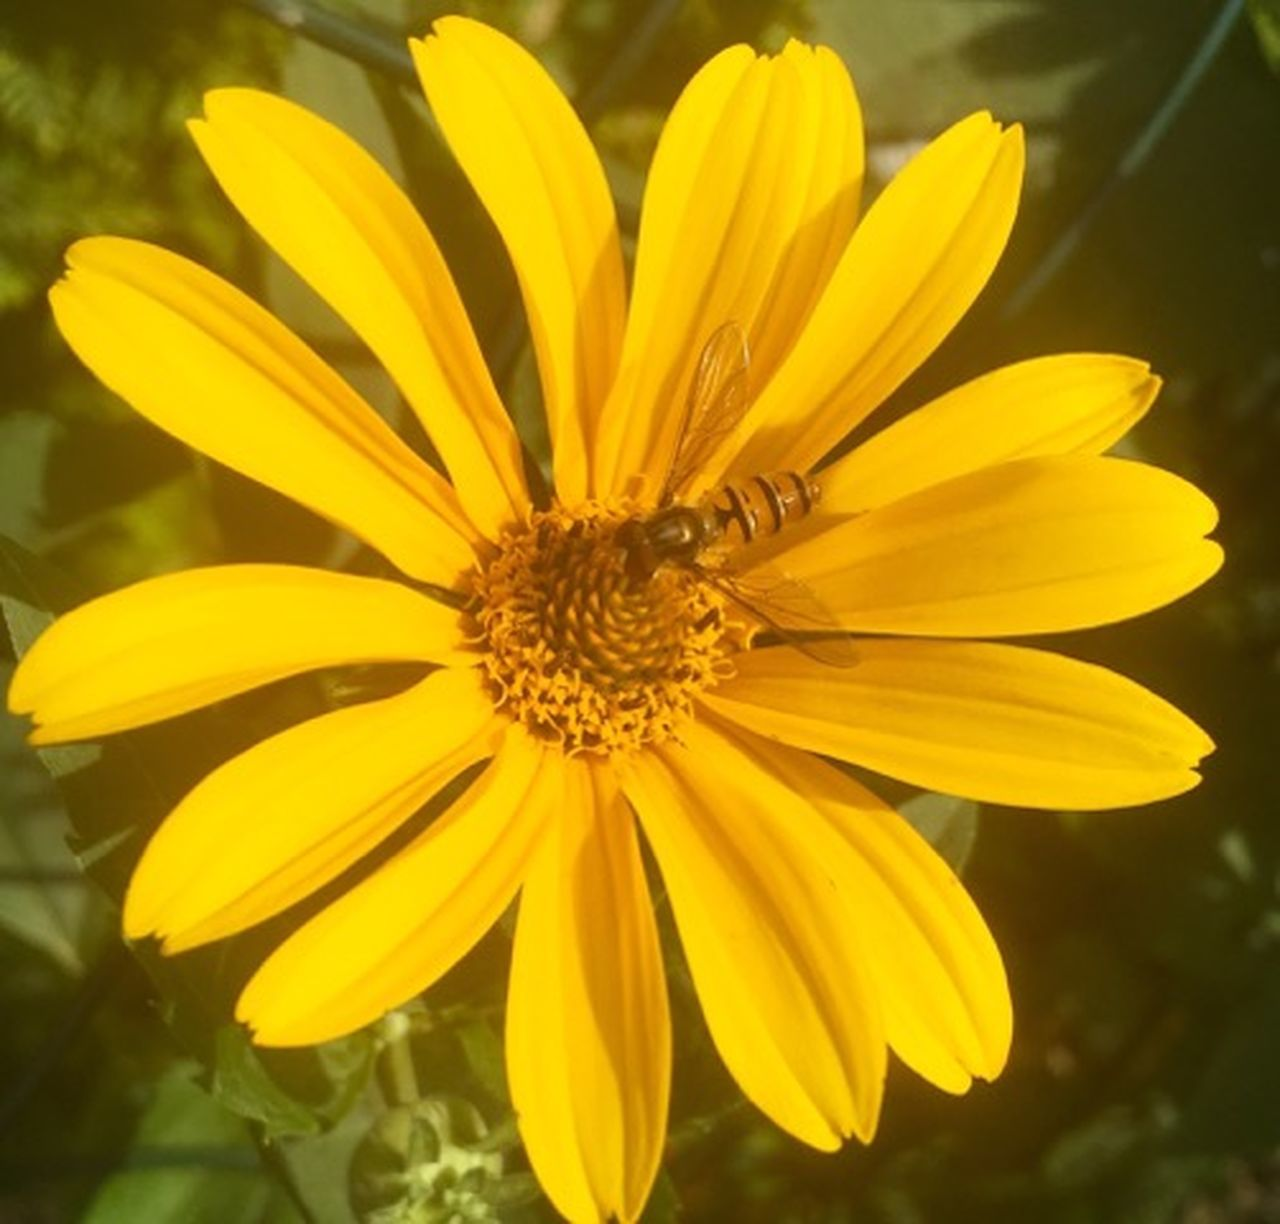 flower, petal, fragility, yellow, flower head, growth, nature, plant, freshness, beauty in nature, pollen, blooming, day, outdoors, no people, focus on foreground, close-up, gazania, springtime, black-eyed susan